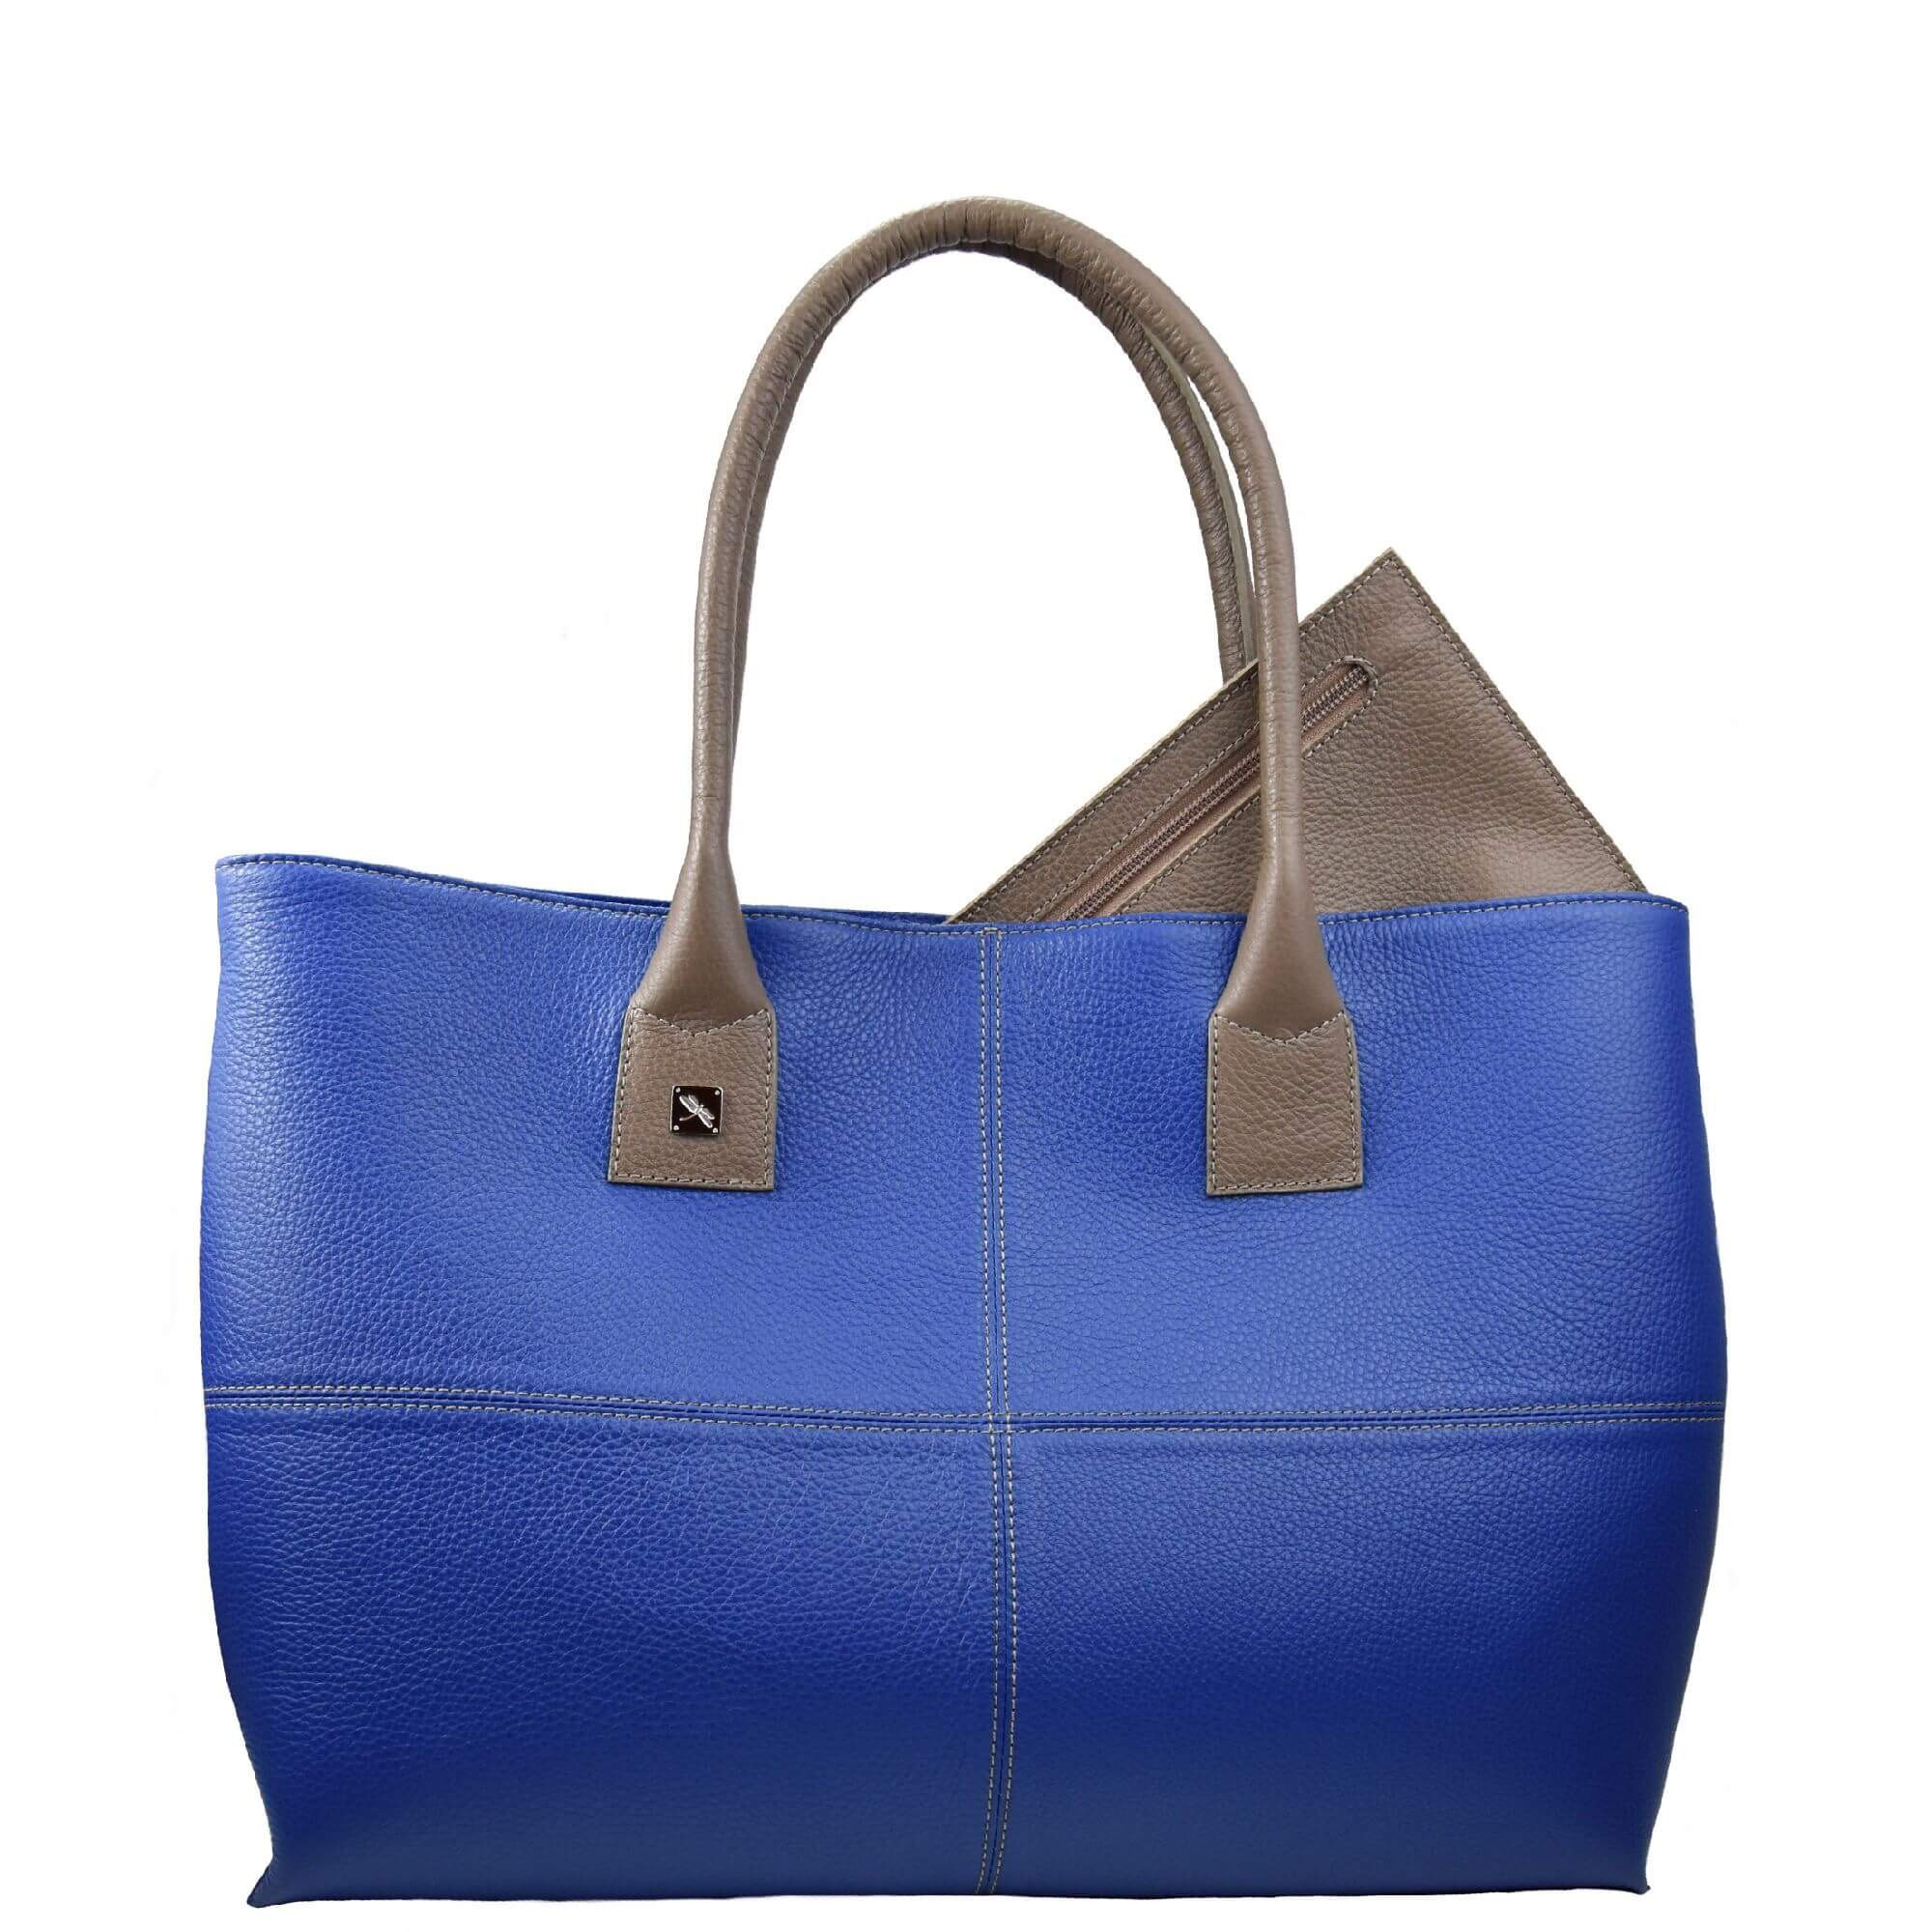 blue and taupe maxi bag